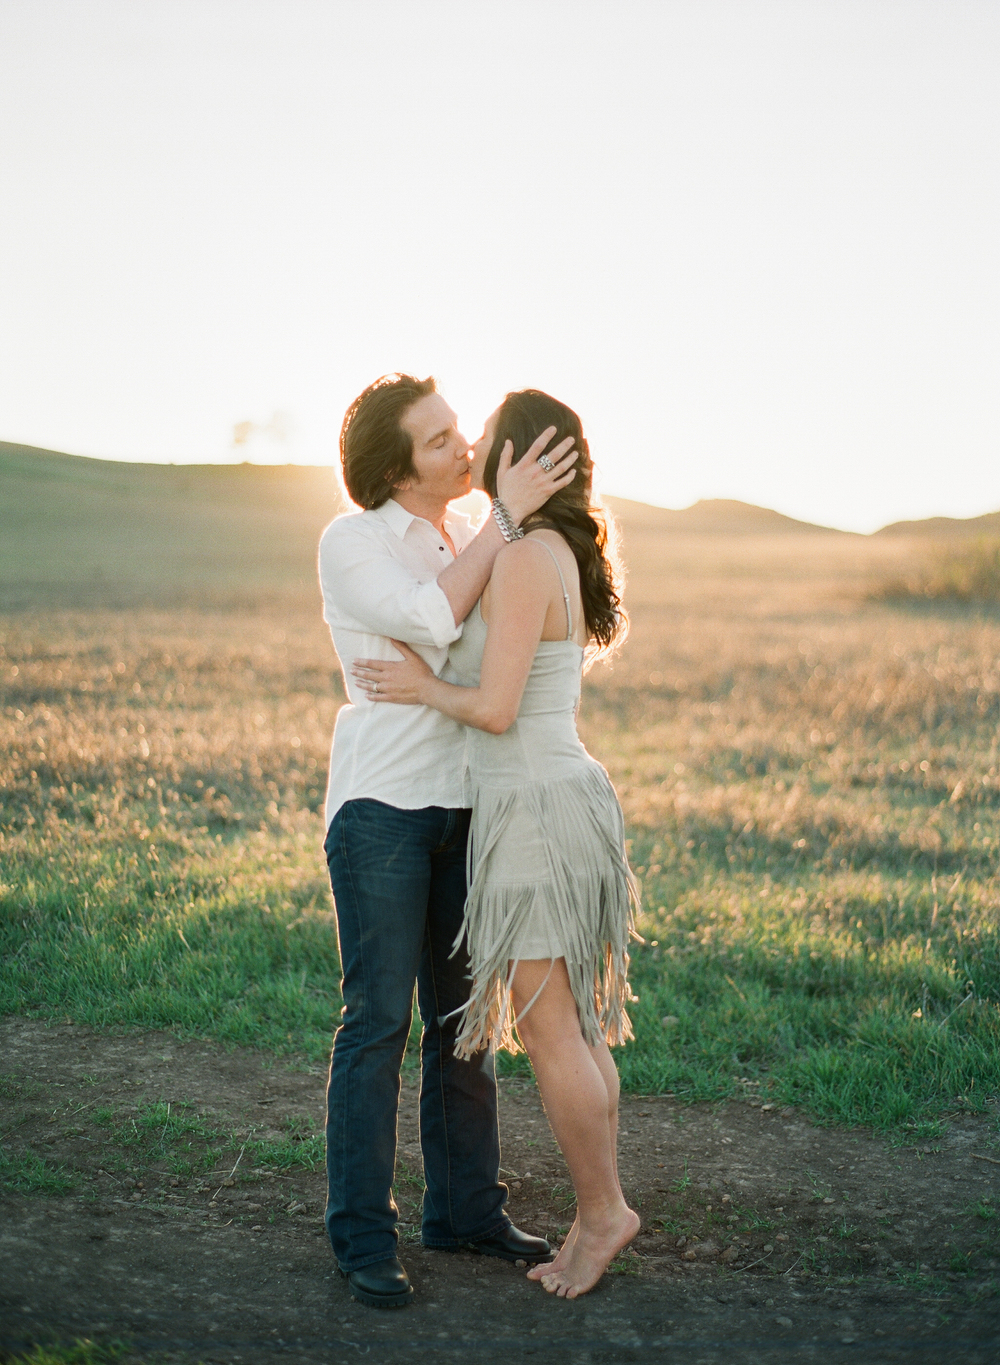 michellebeller.com | Engagement Photography by Michelle Beller